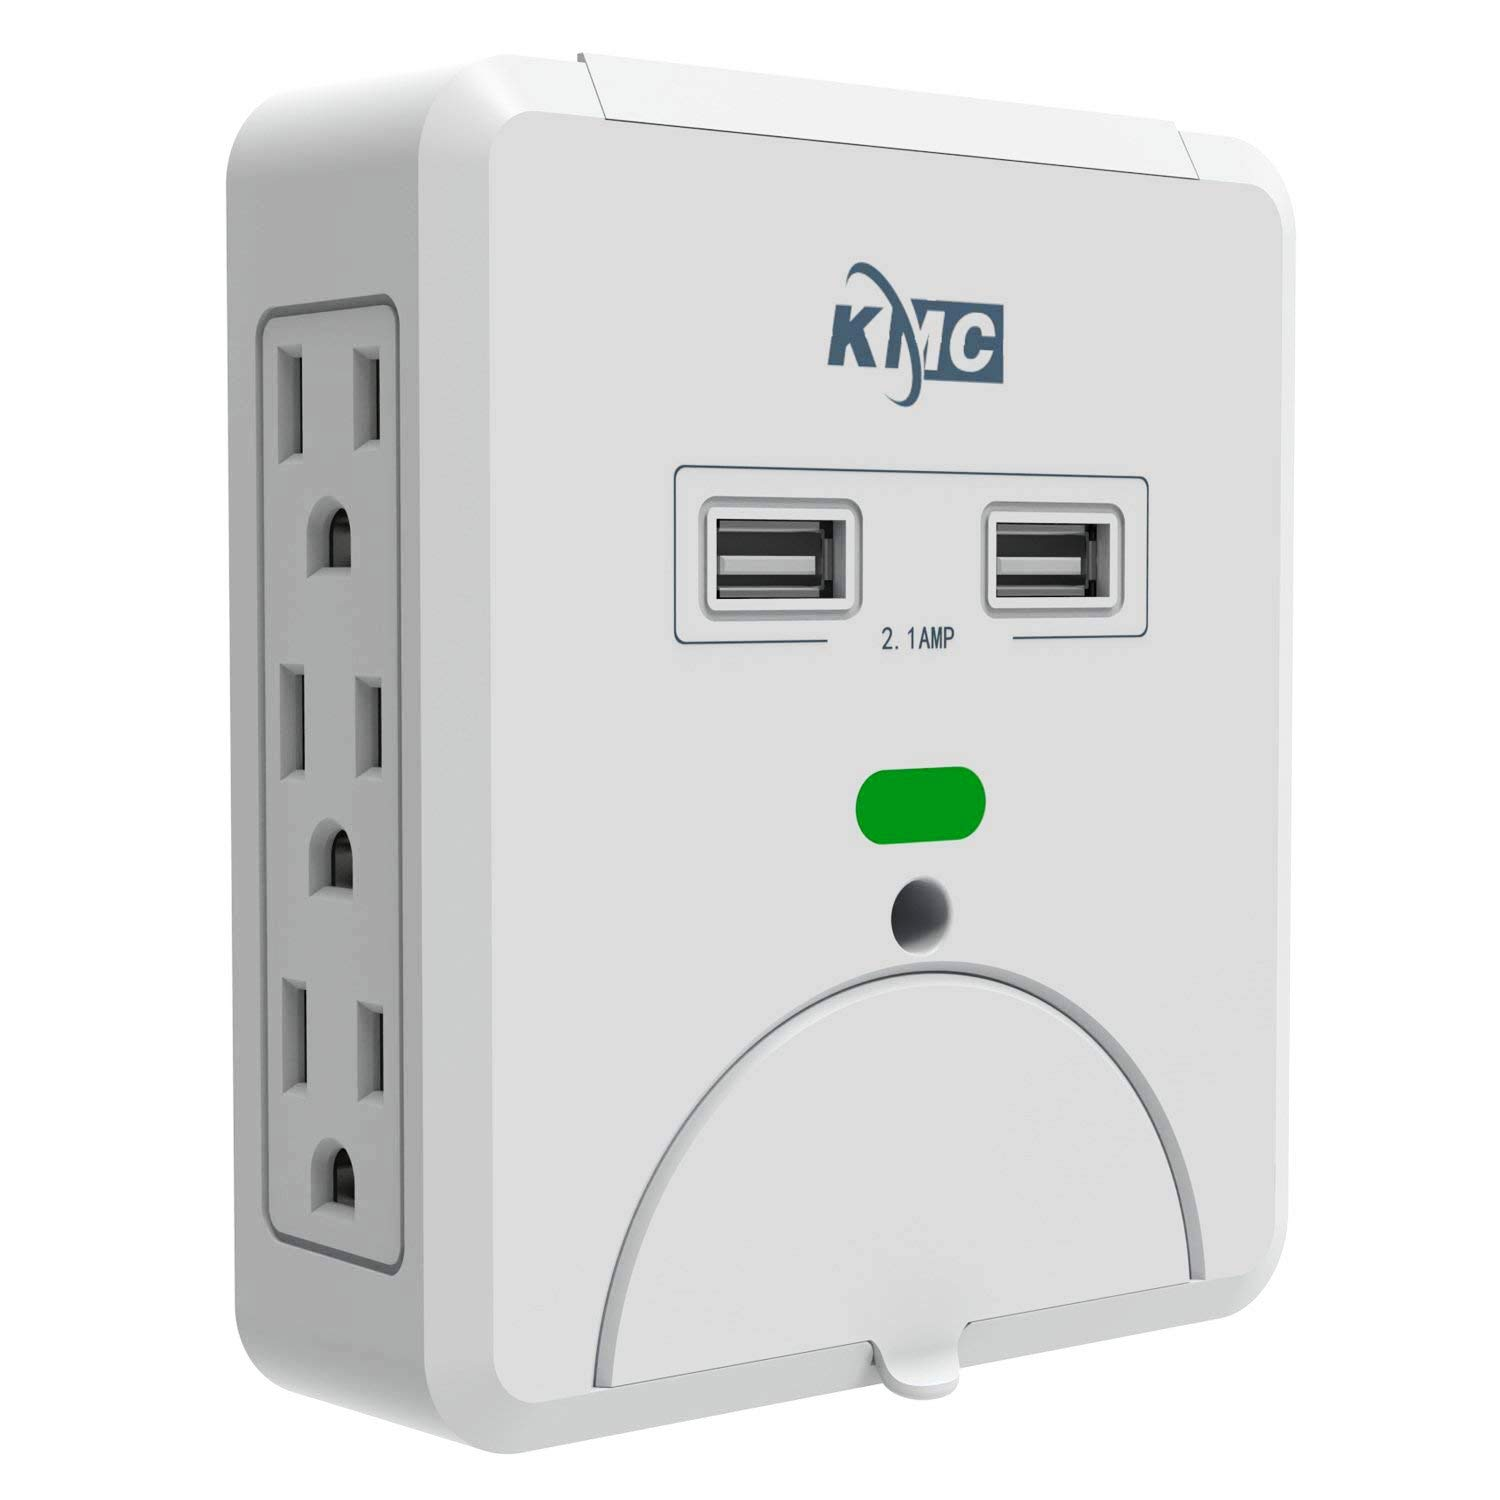 KMC Wall Surge Protector,6 Outlet Wall Mount Power Strip with 2 USB Charging Ports Total 2.4 AMP,Dual Slide-Out Smartphone Holders Design, Portable for Travel/Home/Office Use,ETL Certified